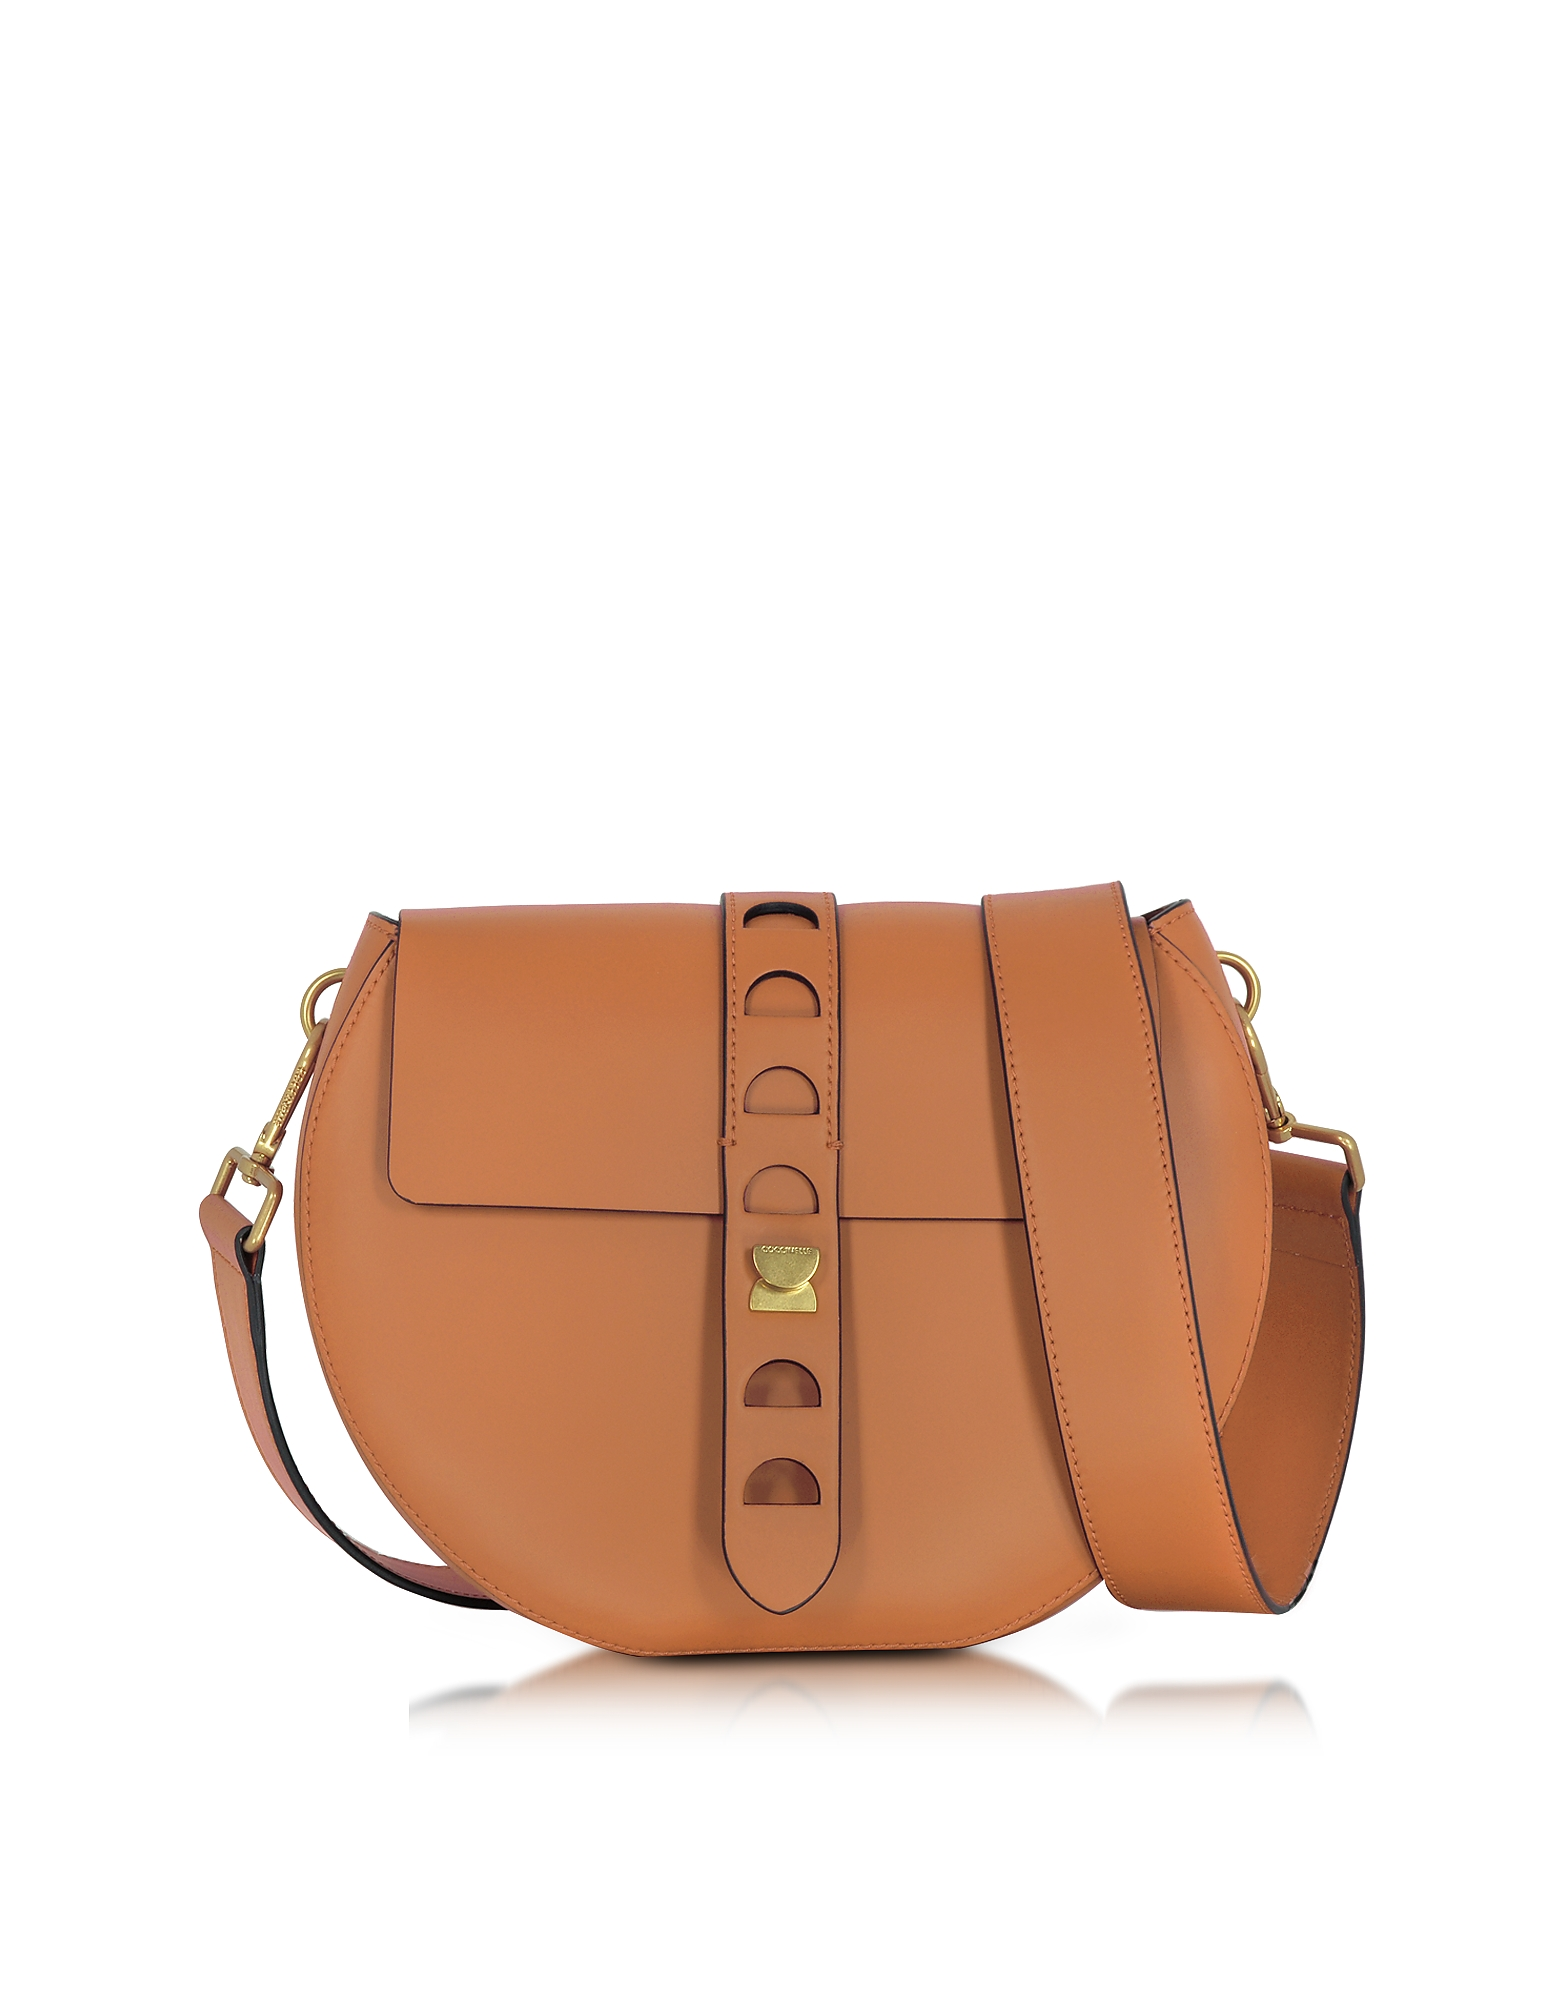 Coccinelle Carousel Large Cuoio Leather Crossbody Bag